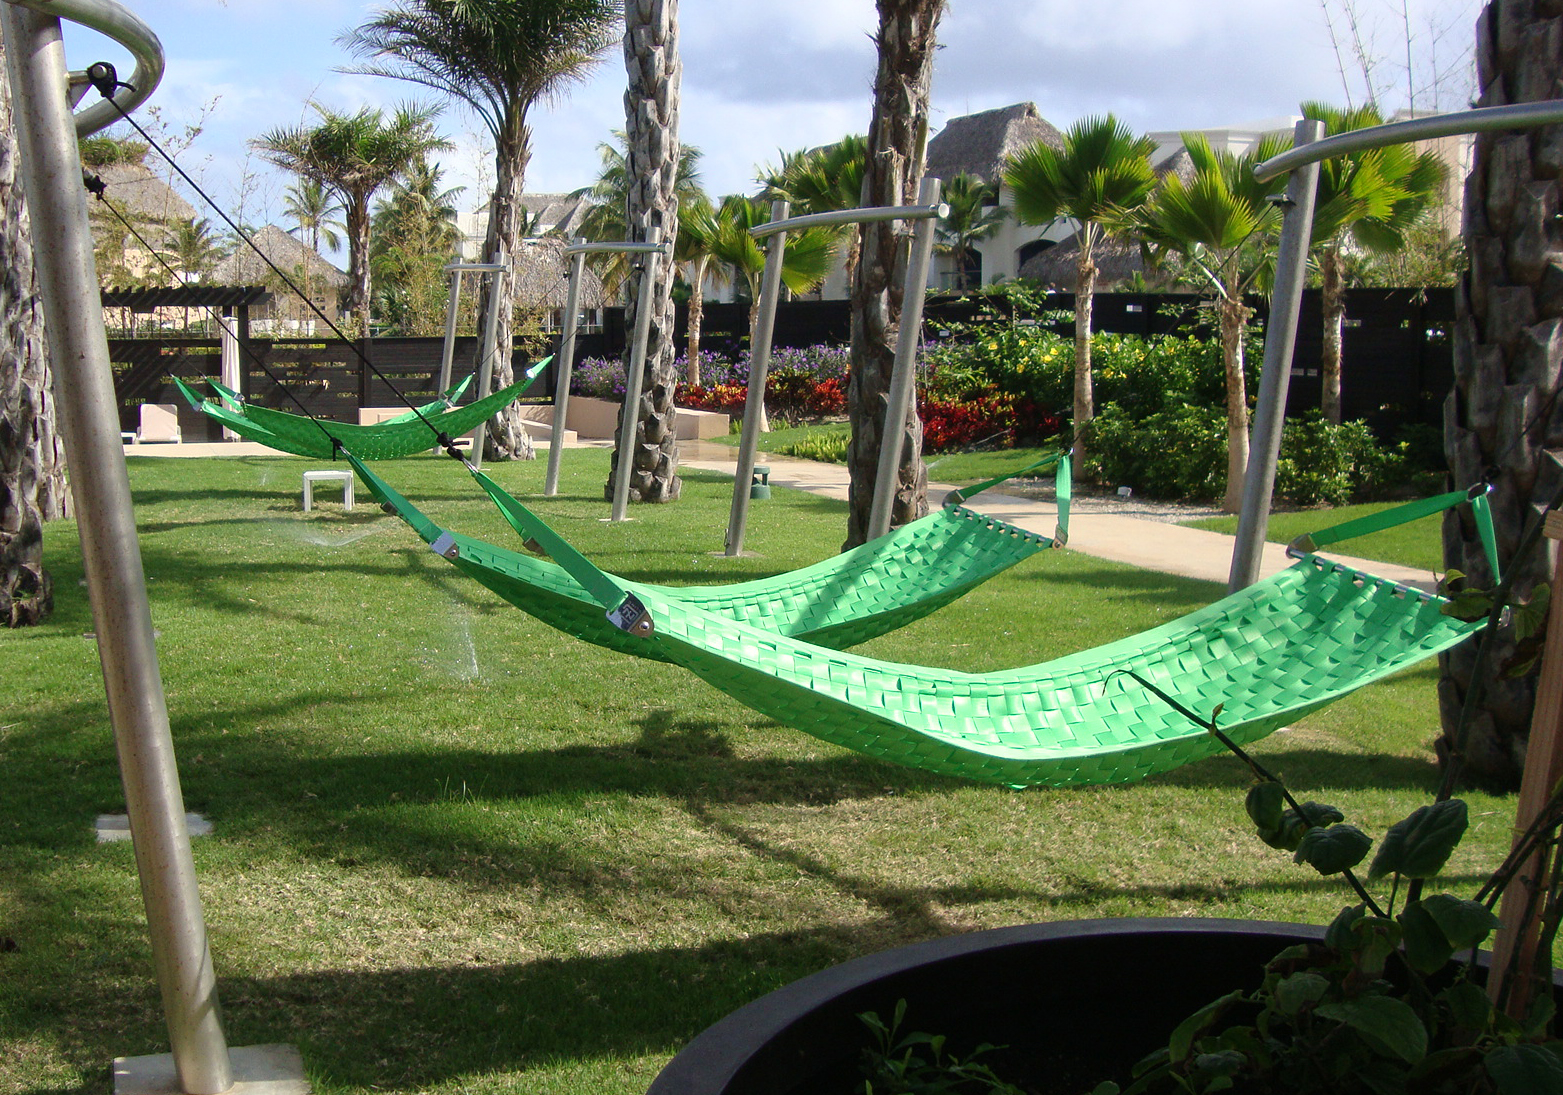 Four lime green Ting Sling seatbelt hammocks in a communal outdoor environment.